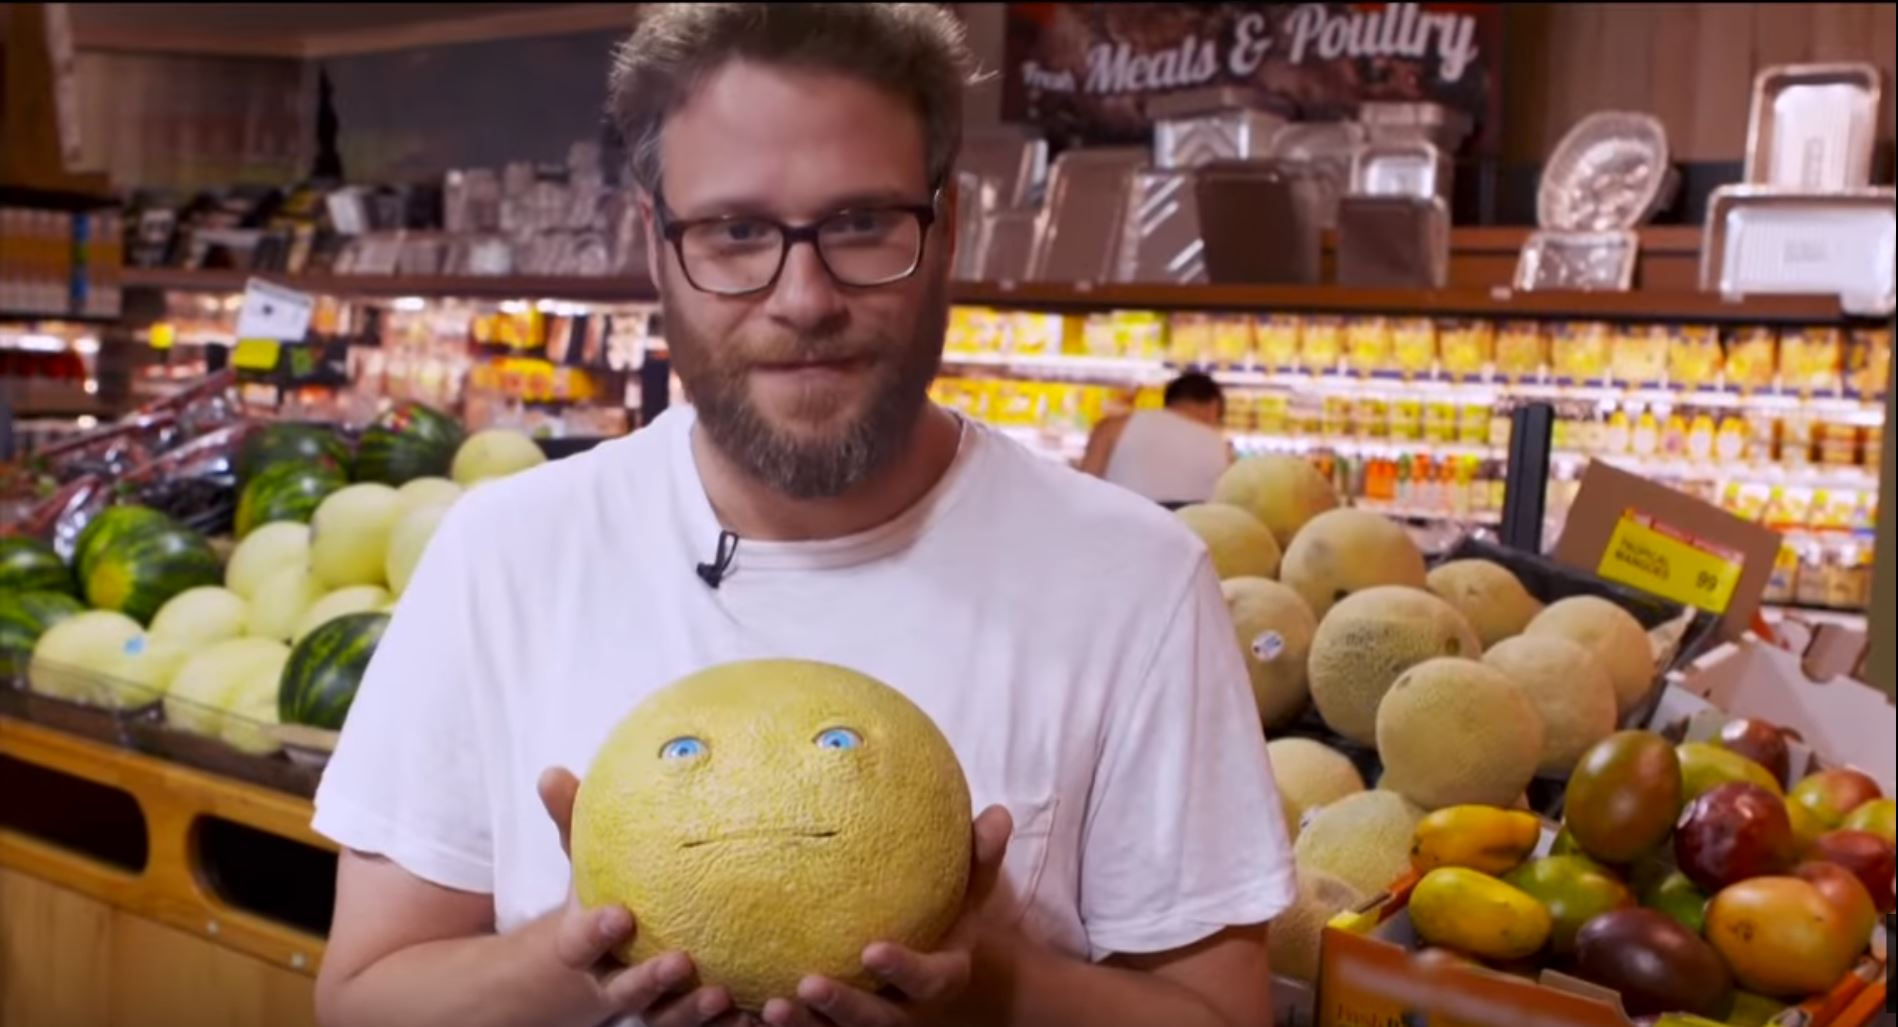 Seth Rogen shows the people of New York that our food has feelings with awesome prank